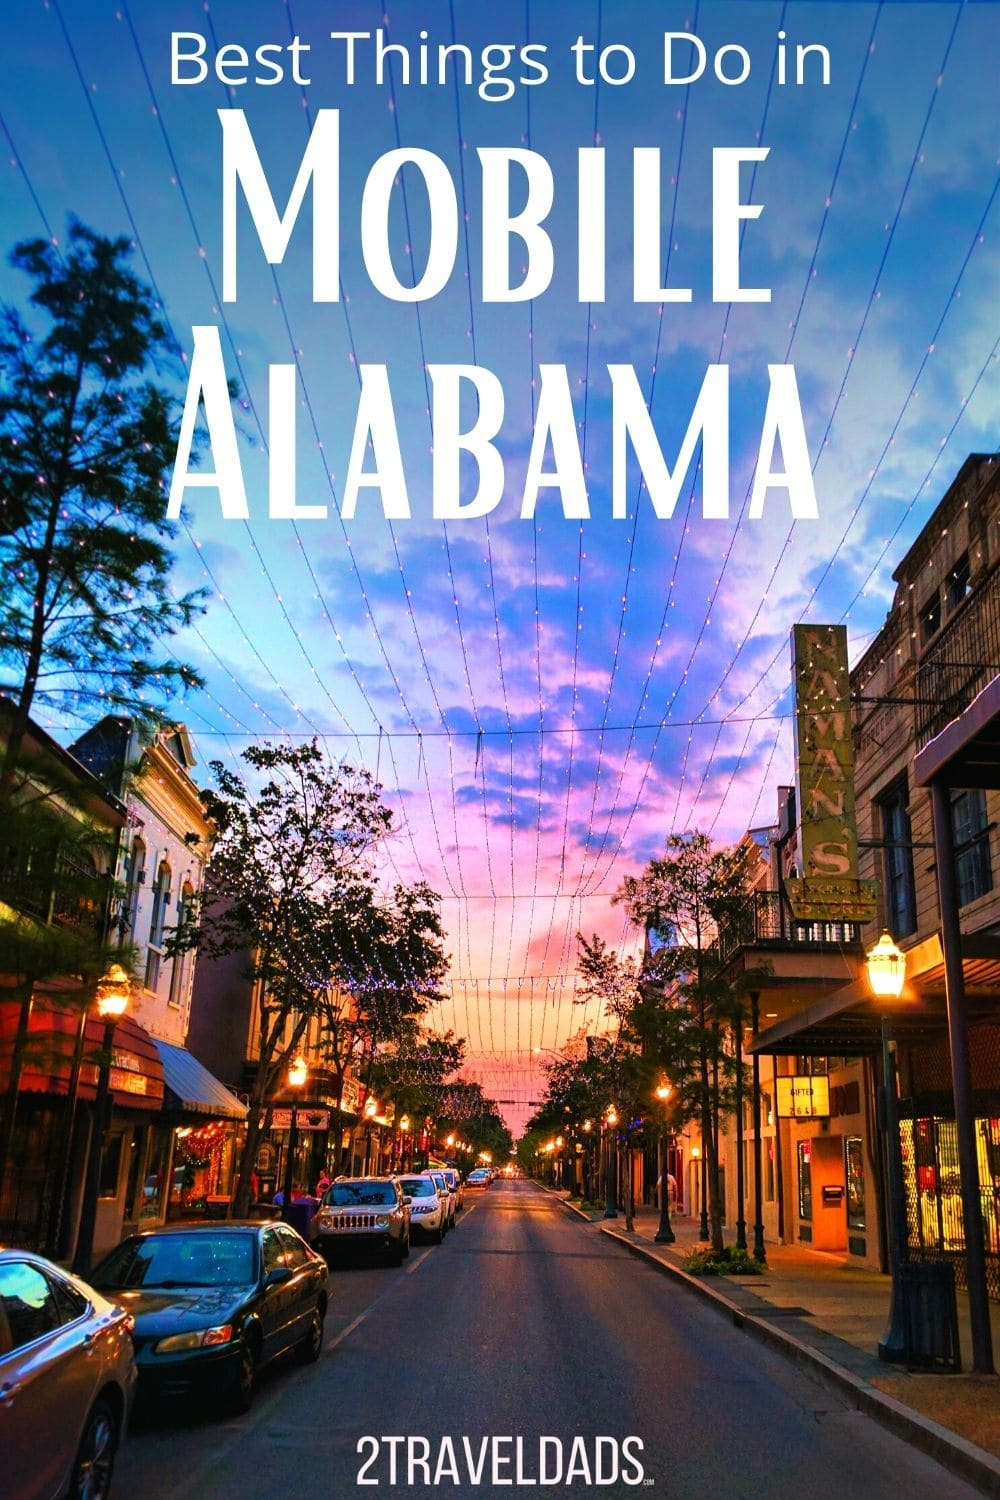 Mobile, Alabama is a fun, mellow alternative to New Orleans. The best things to do in Mobile, Alabama range from walking the wrought iron balcony lined streets to airboat rides to find alligators. So much to do in Mobile!